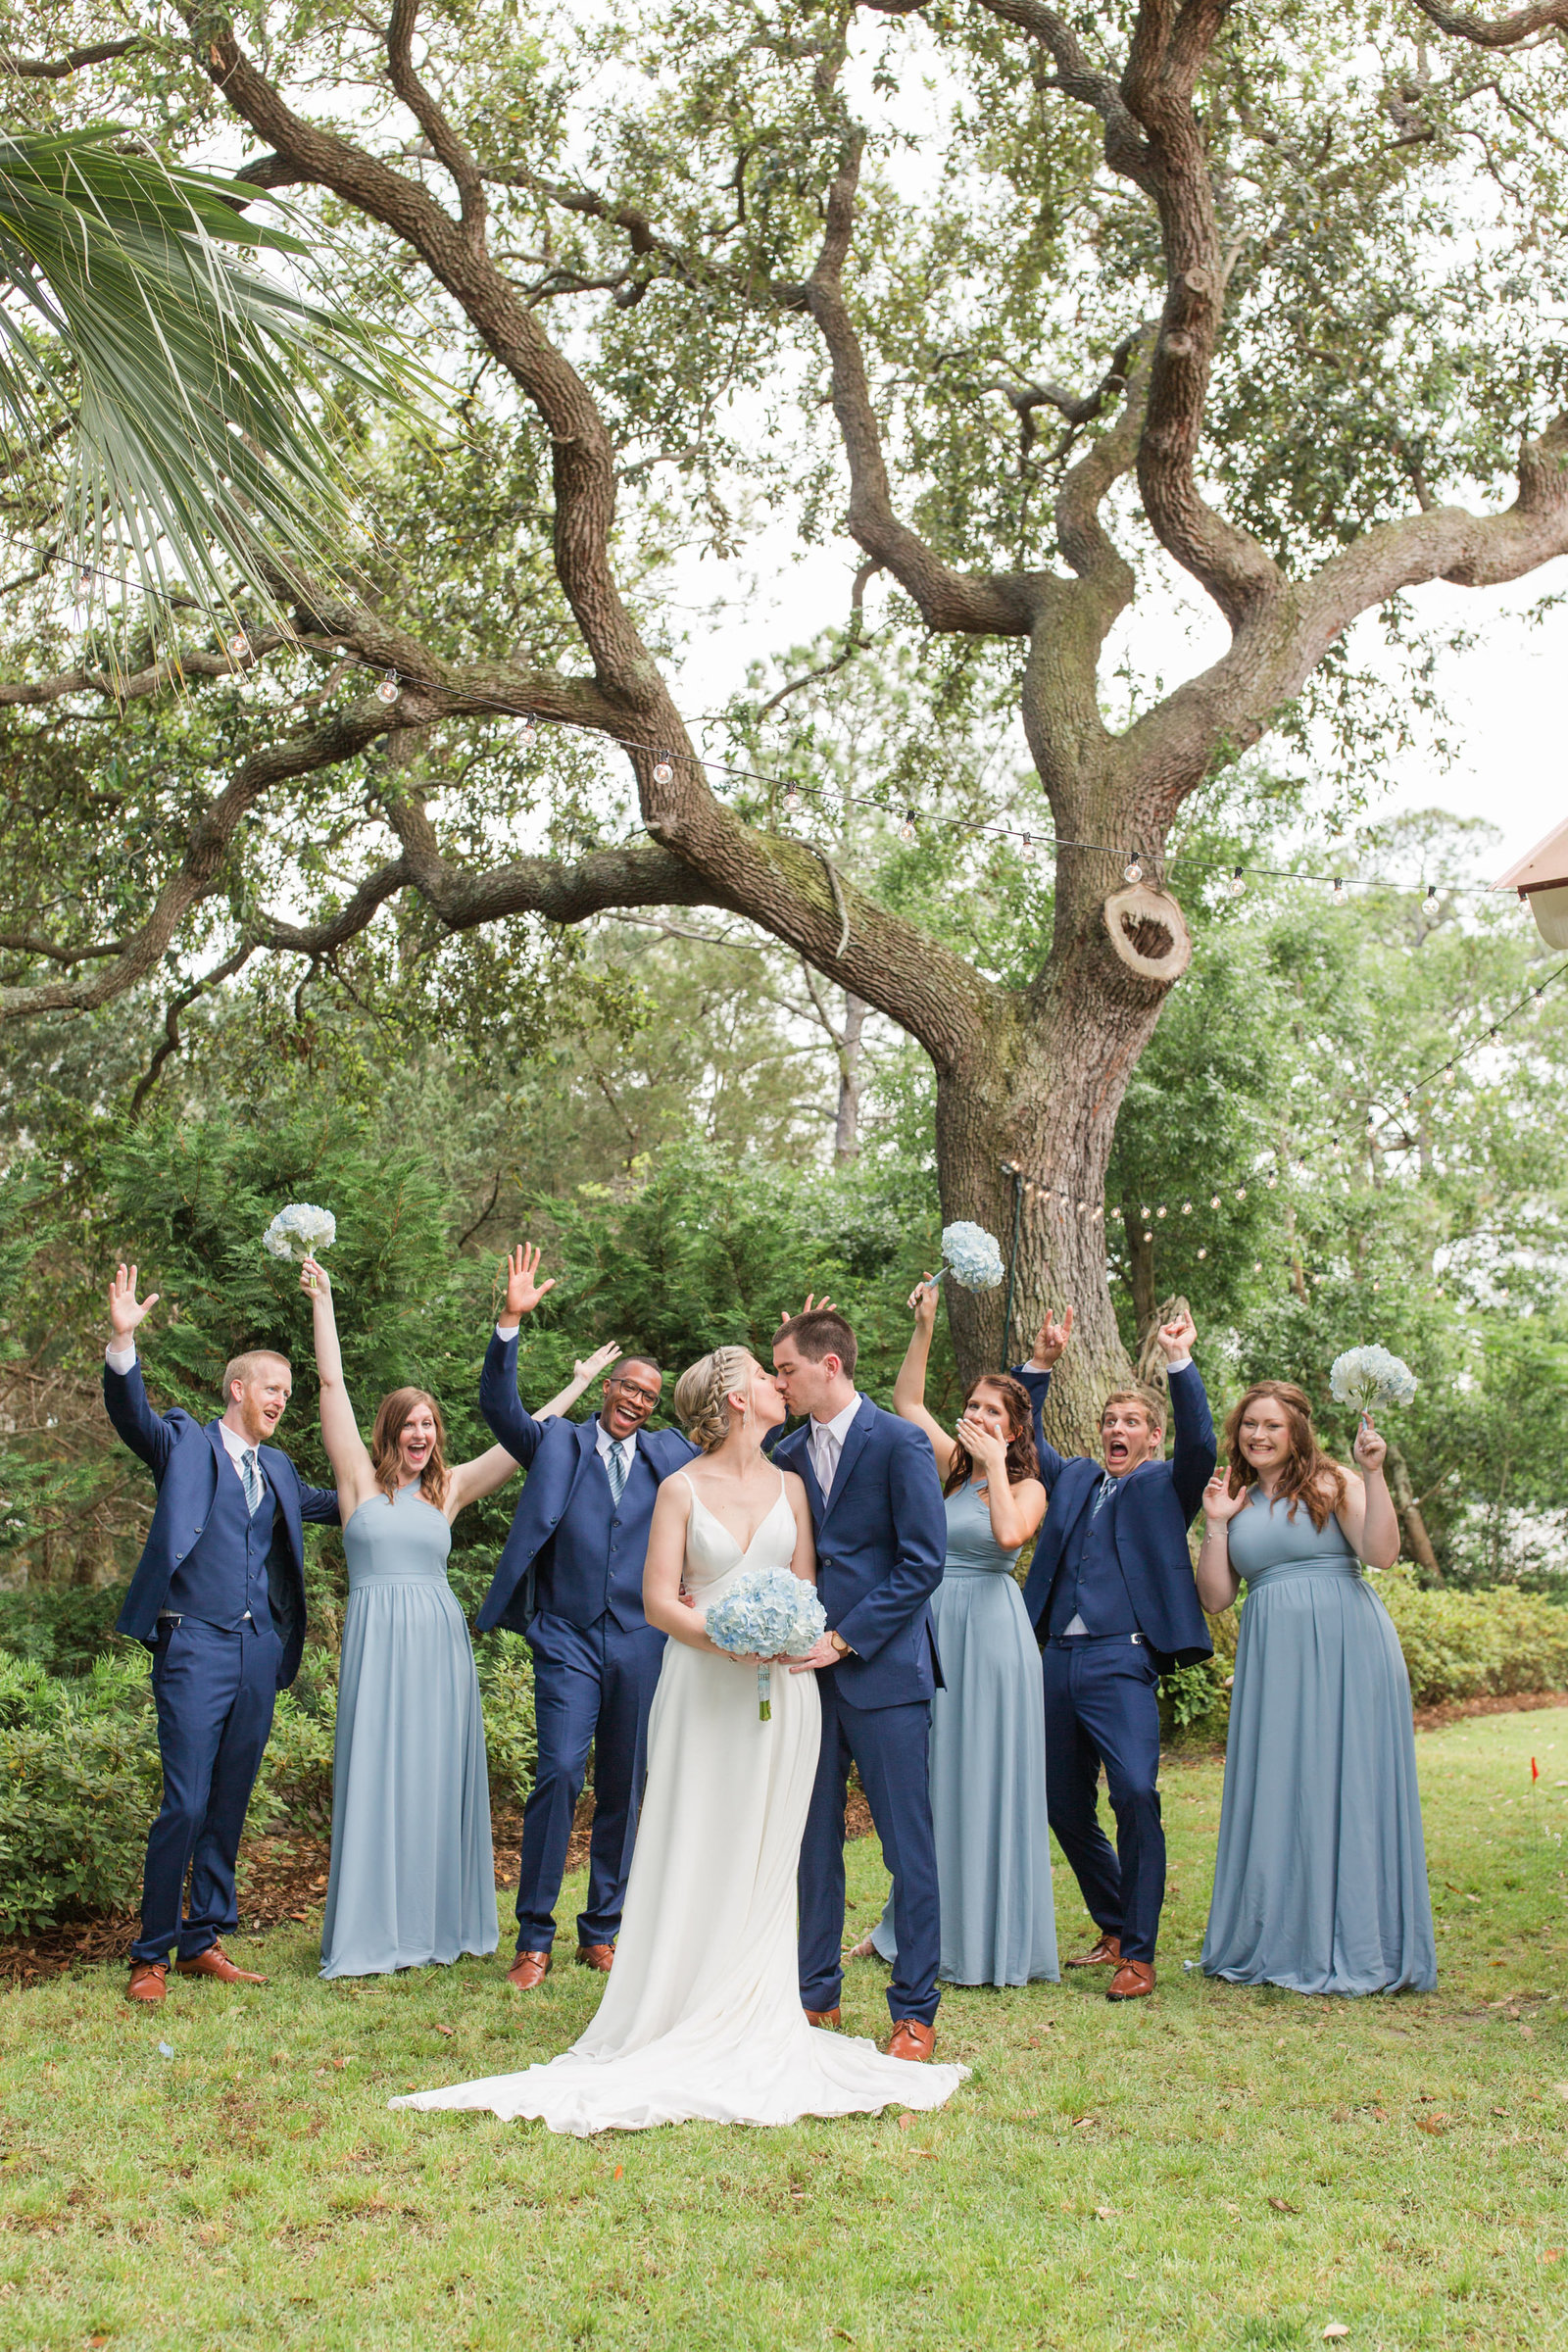 wedding party in blue dresses in front of oak trees cheering as bride and groom kiss